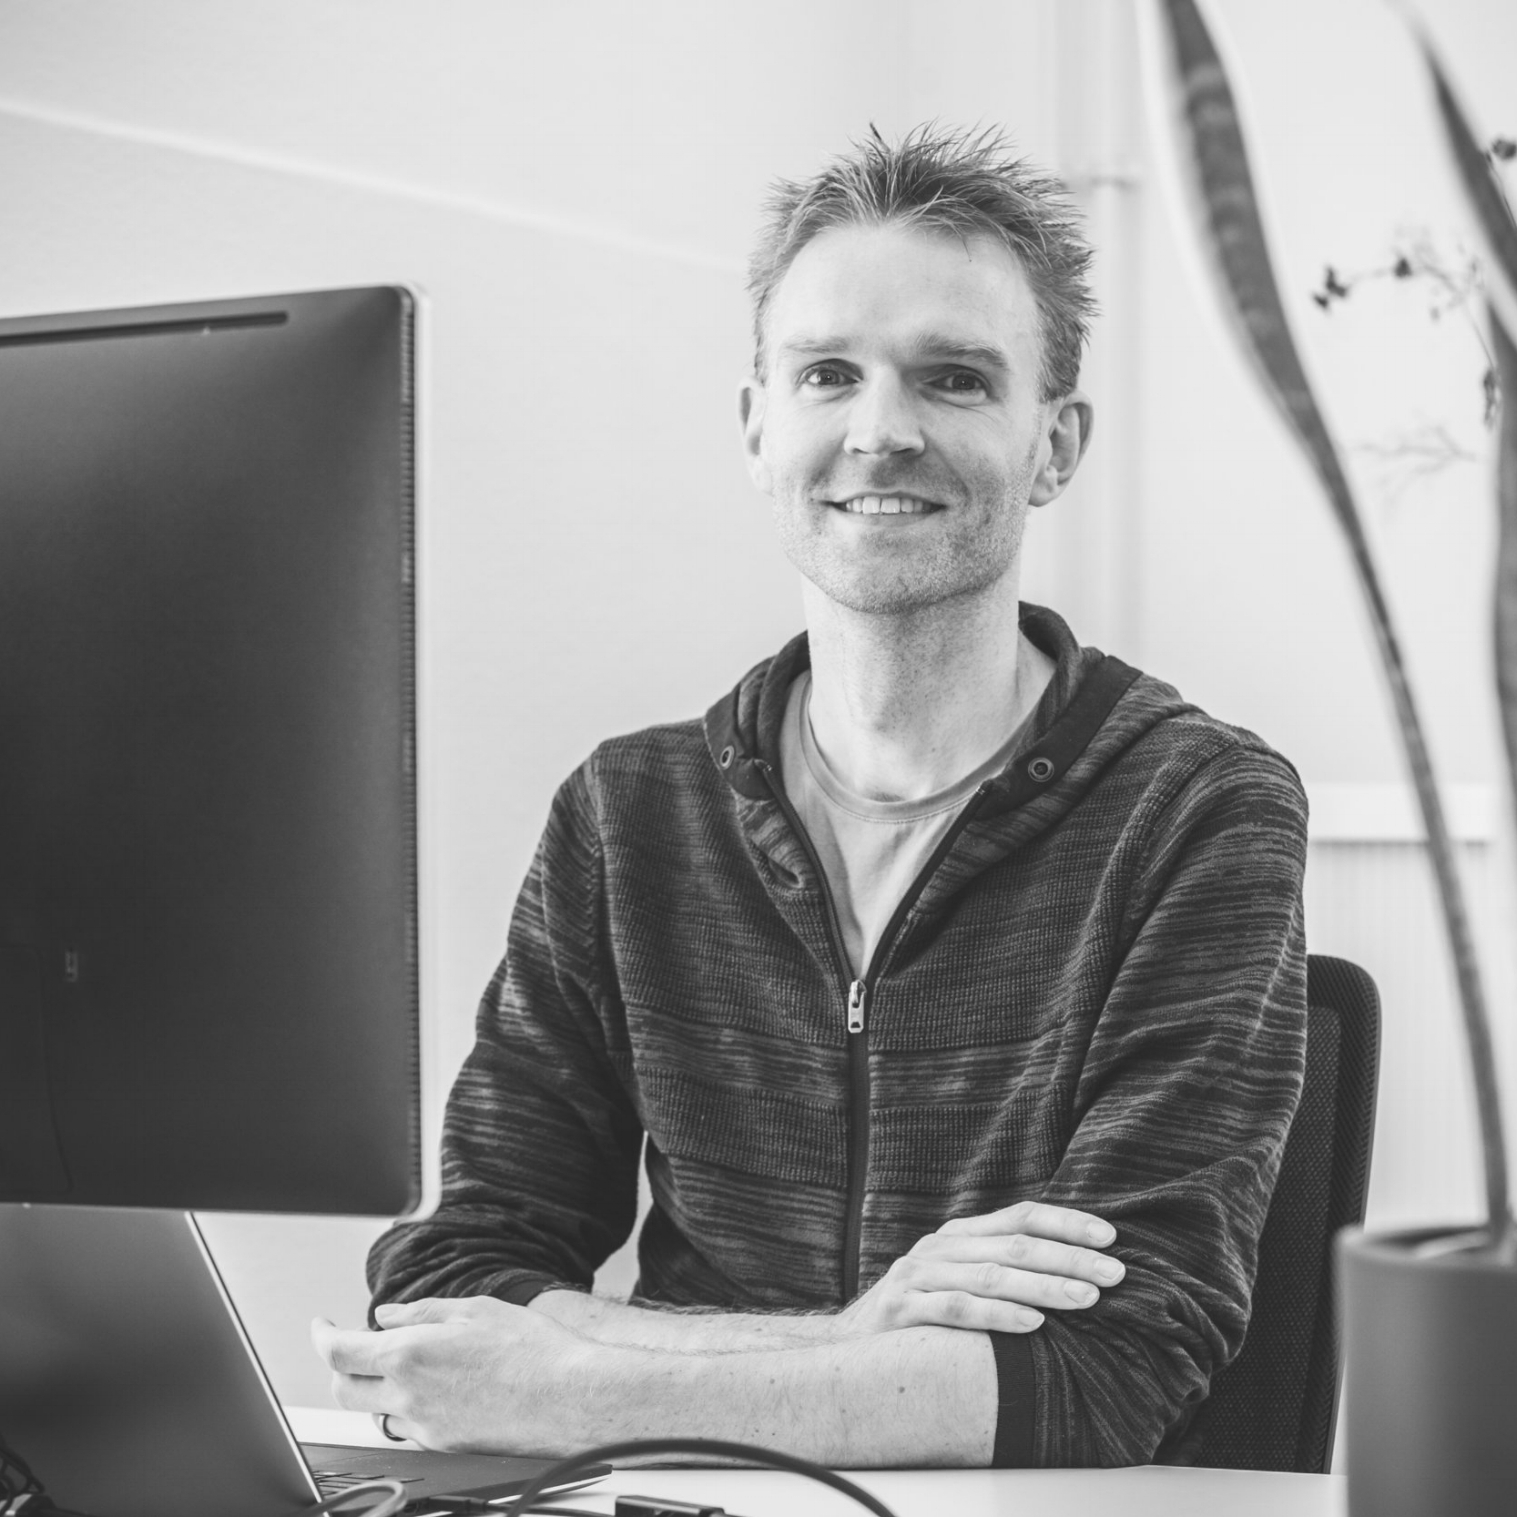 Berto Booijink, MSc - Software Engineer